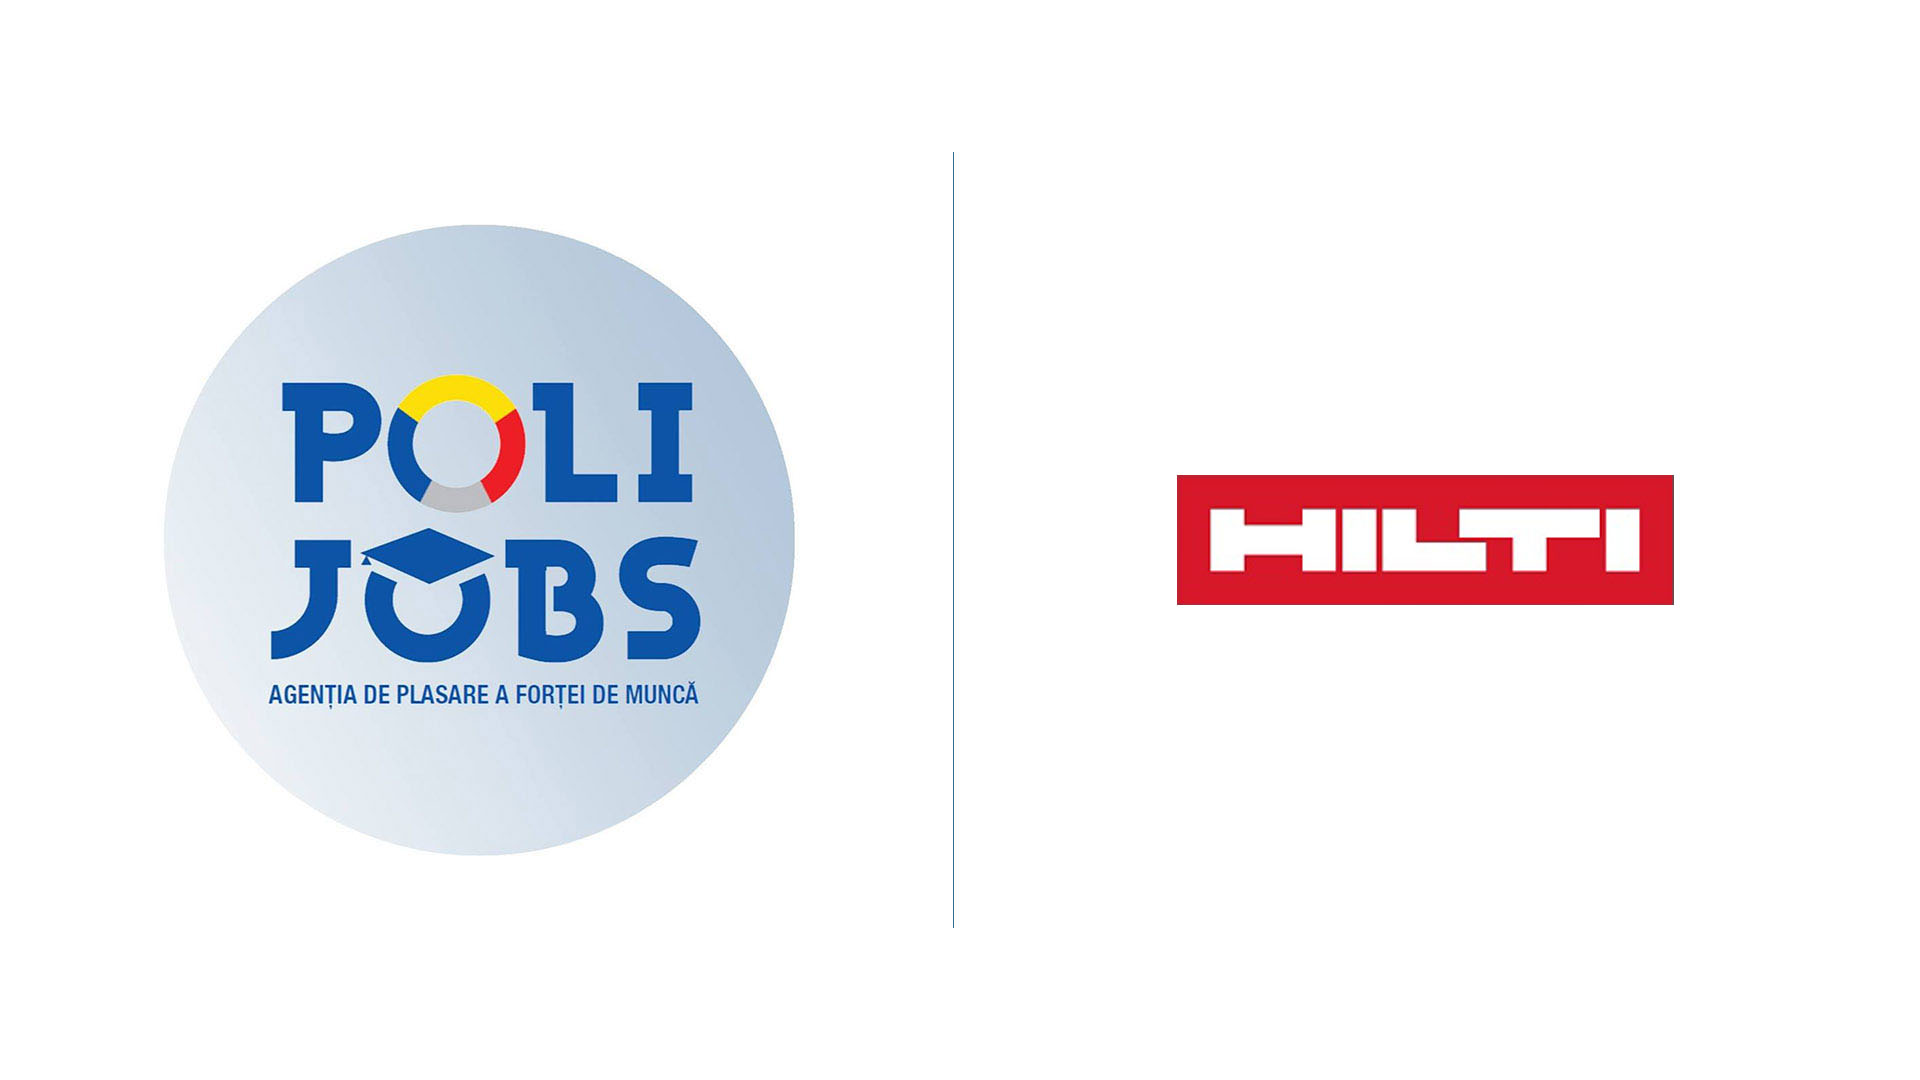 UPB – Hilti IT Competition on Facebook